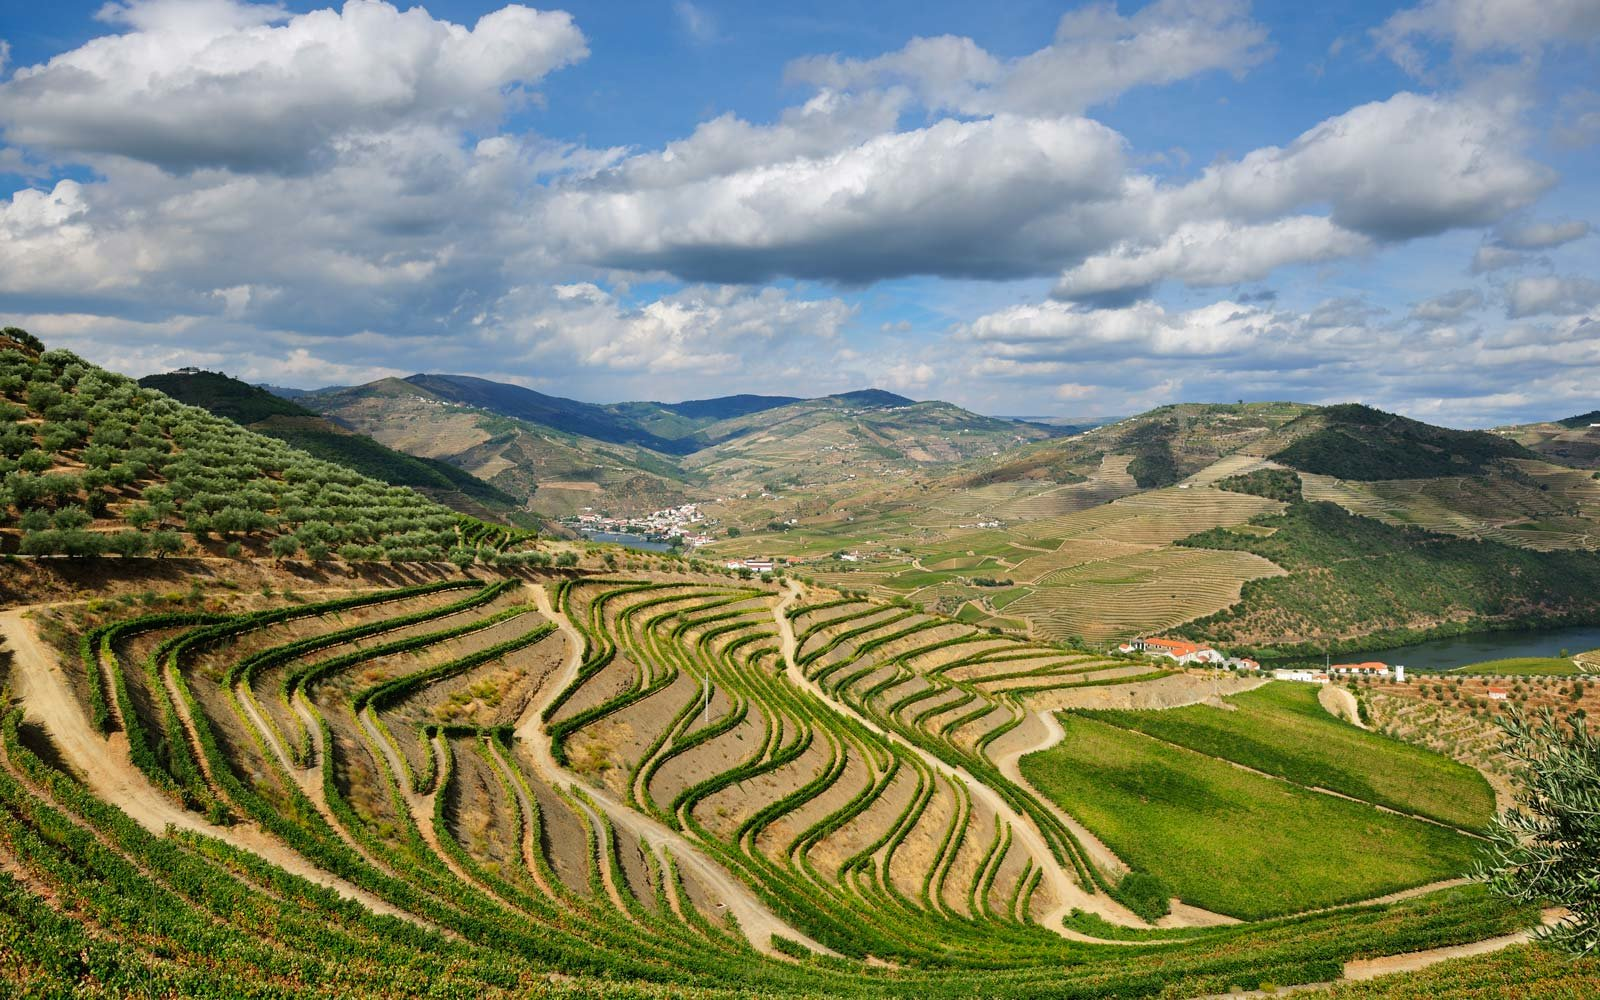 douro-valley-vineyard-PORTUGALWINE1116.jpg